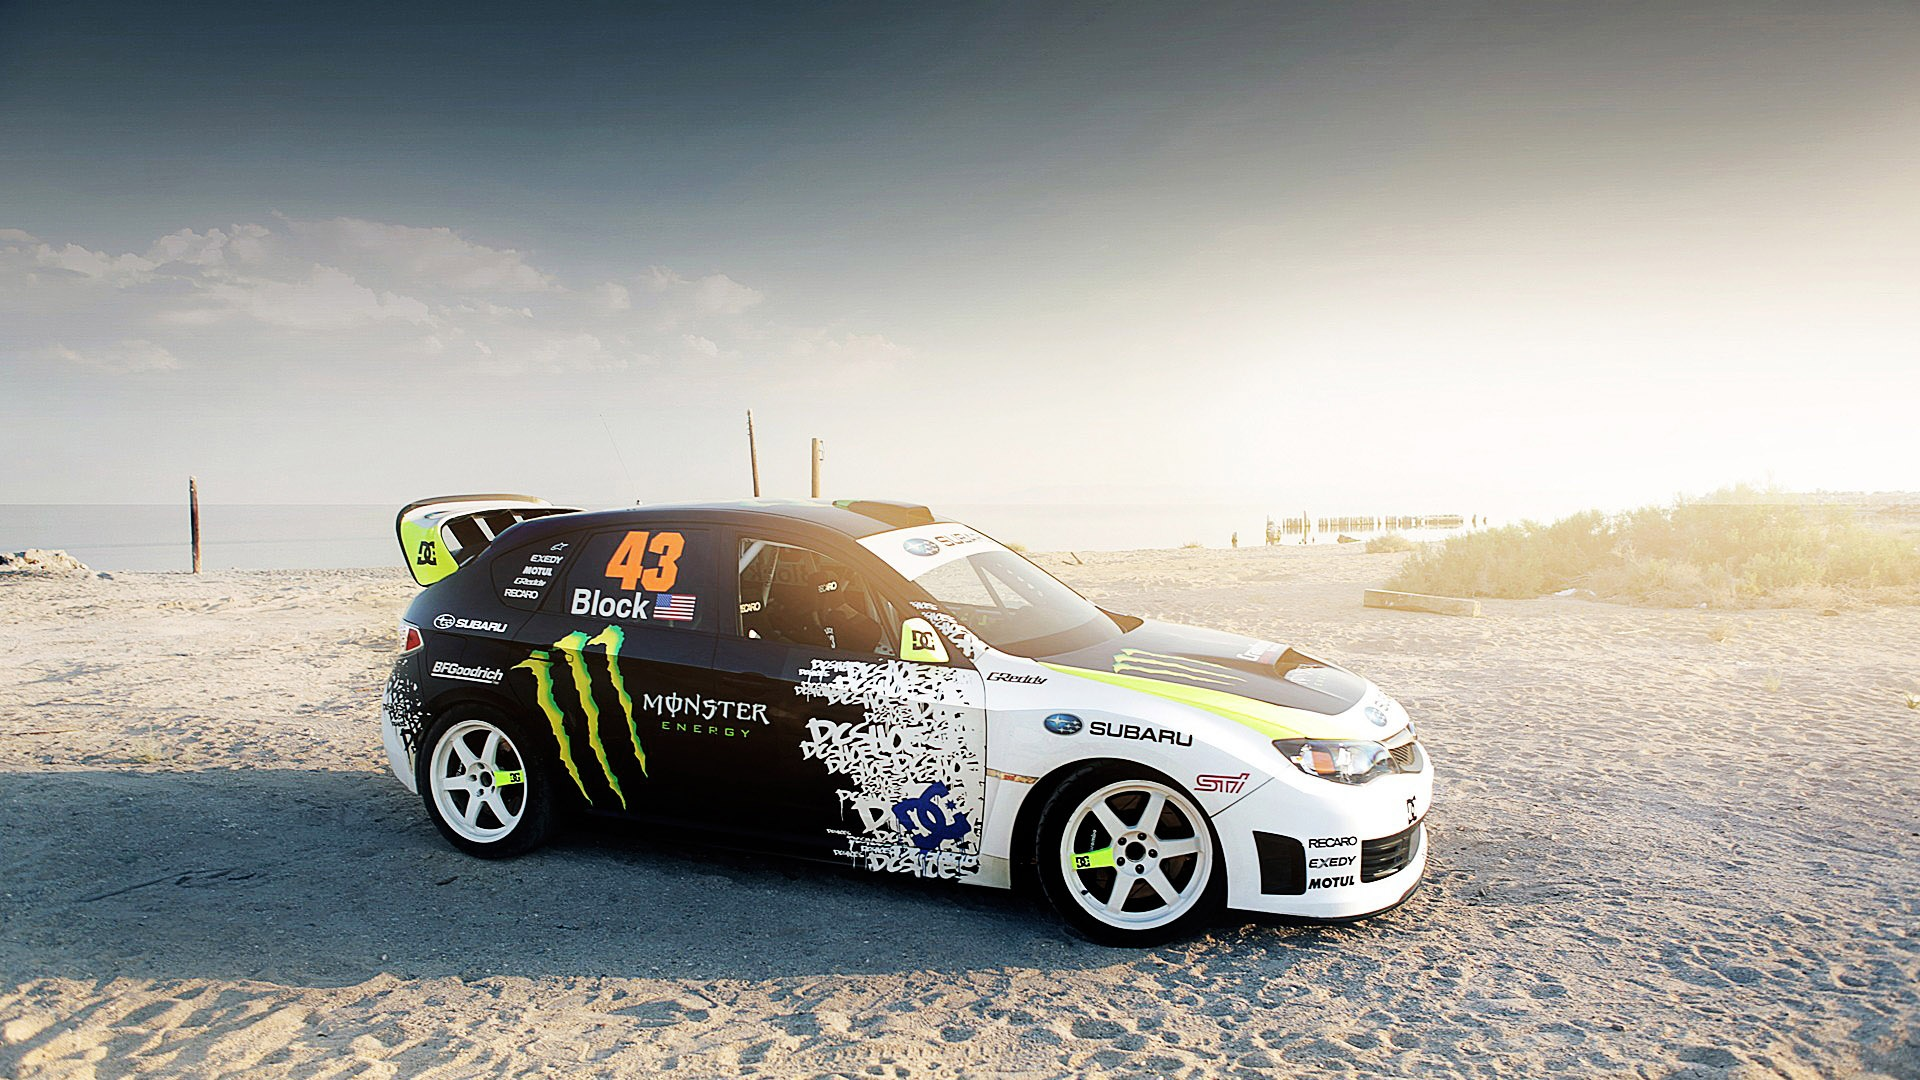 17 awesome hd rally car wallpapers - Cars hd wallpapers for laptop ...